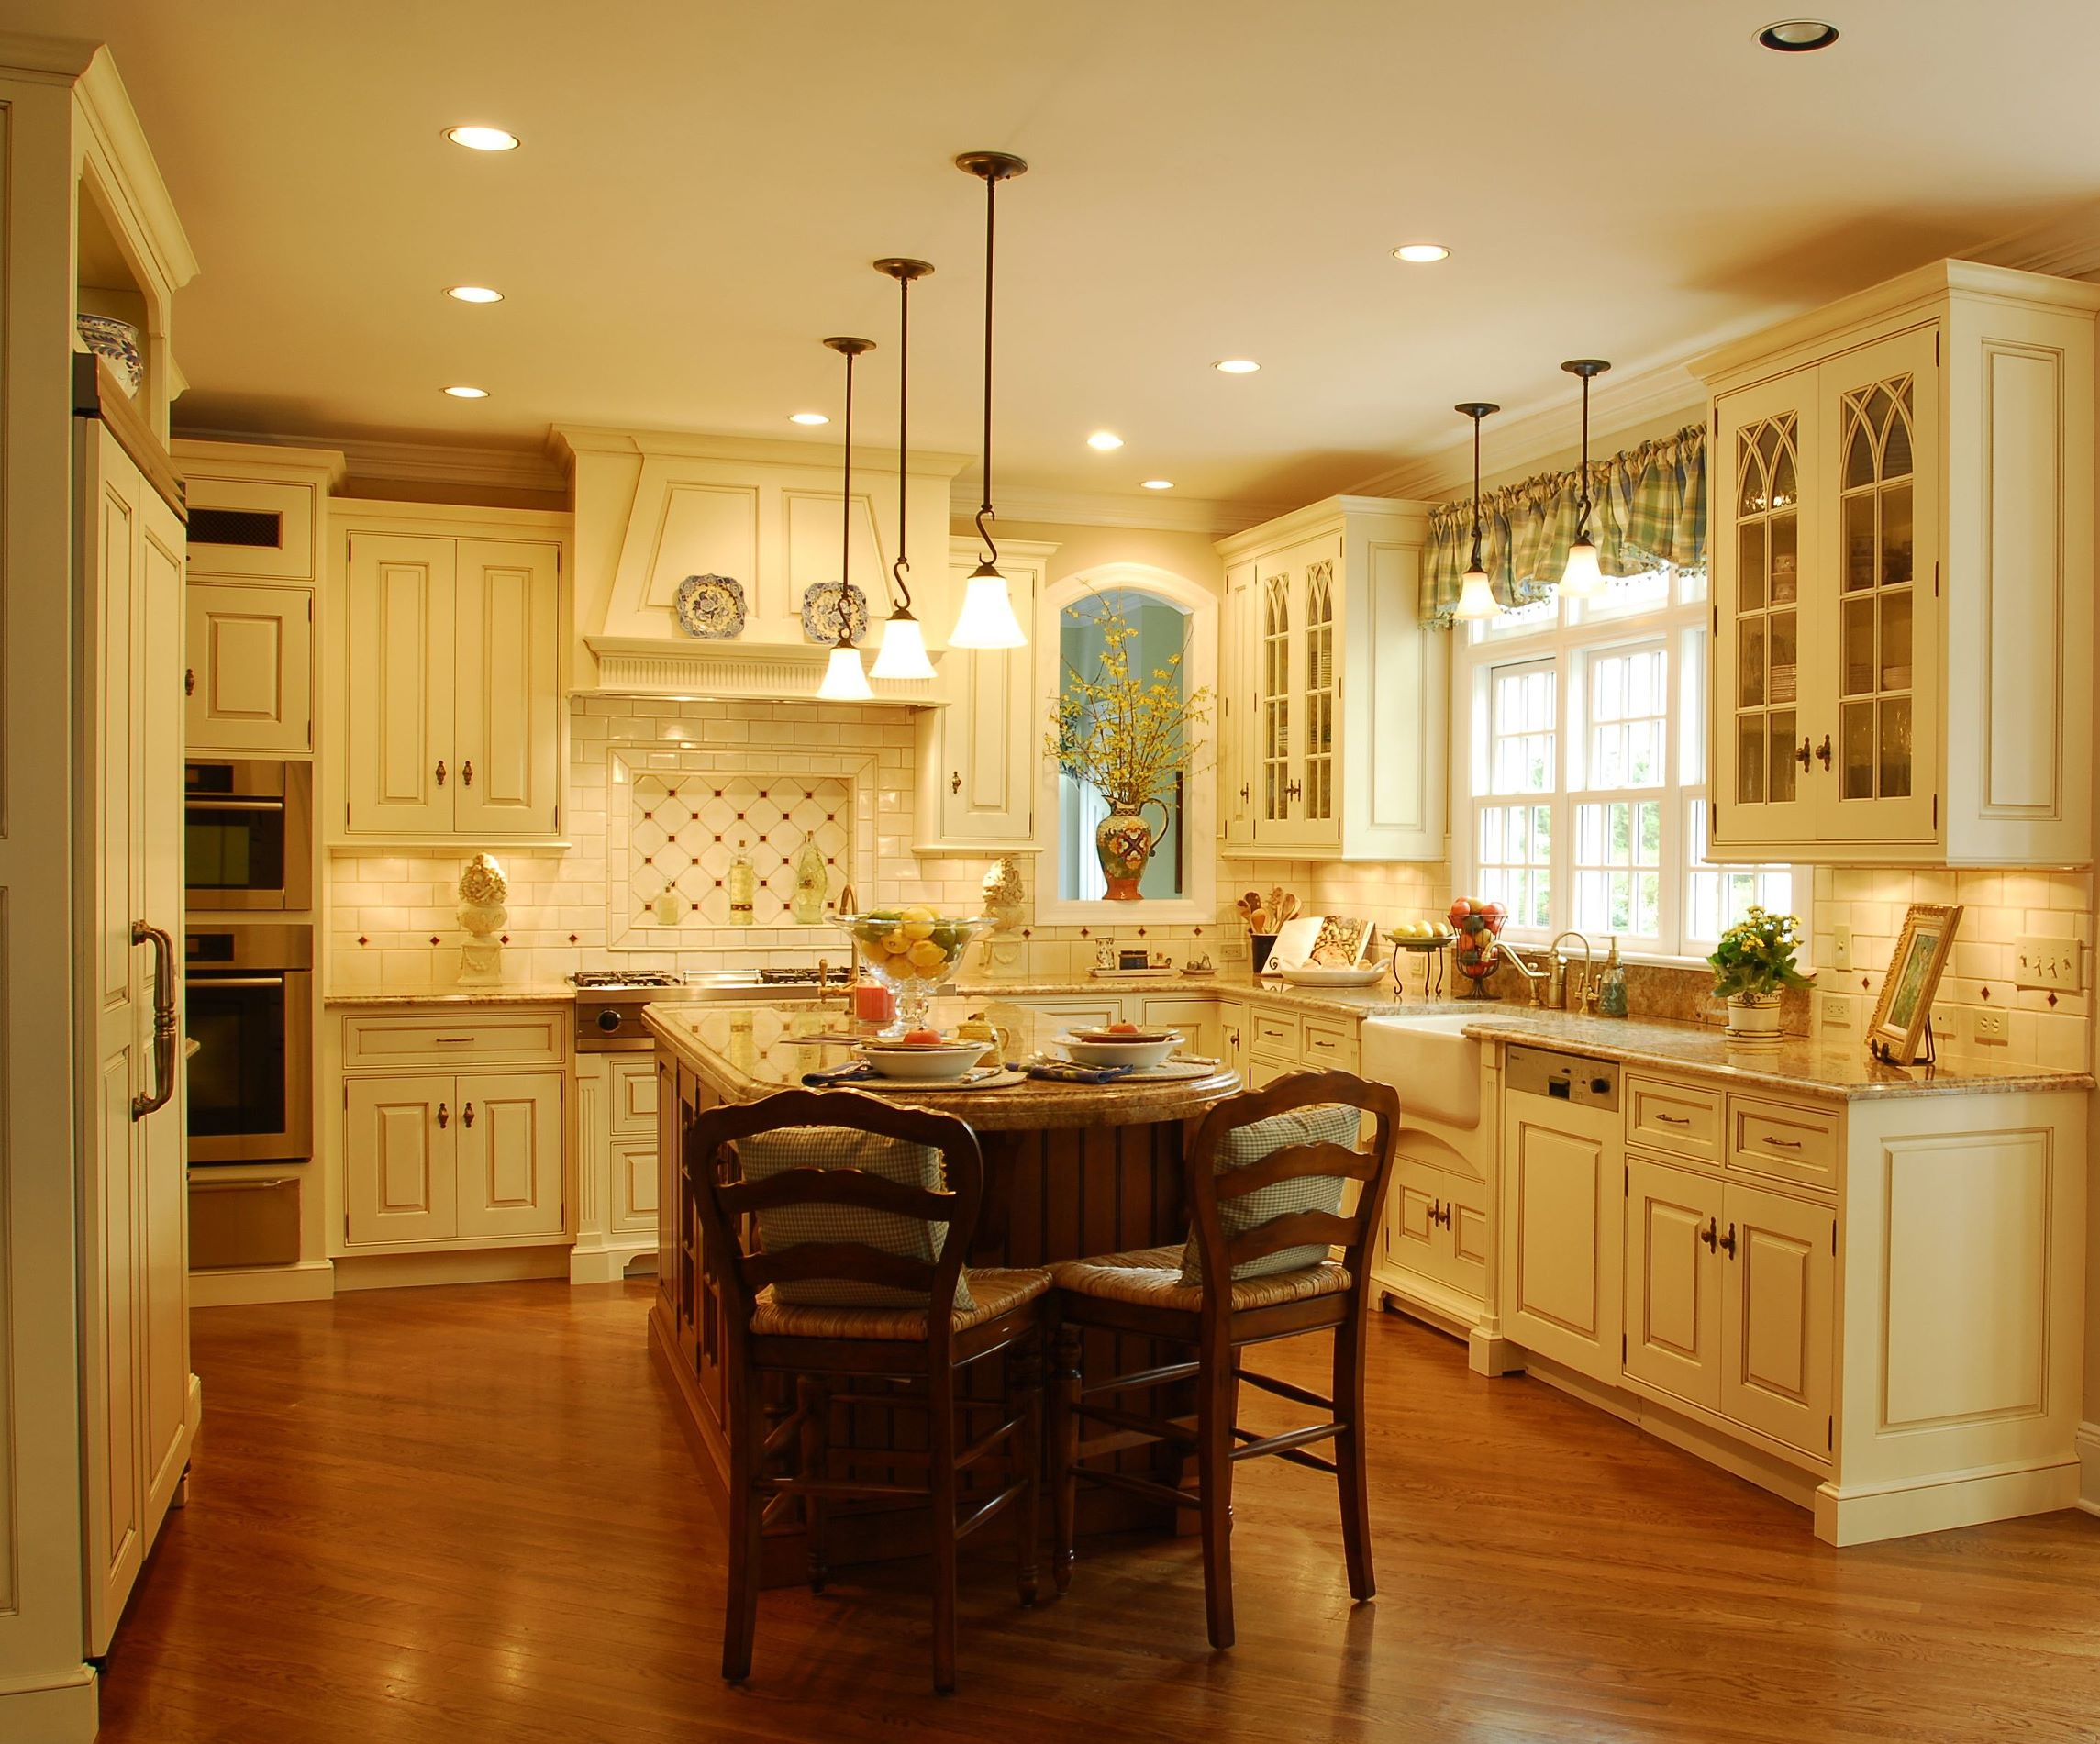 Kitchen Design Ideas: 25 Awesome Traditional Kitchen Design